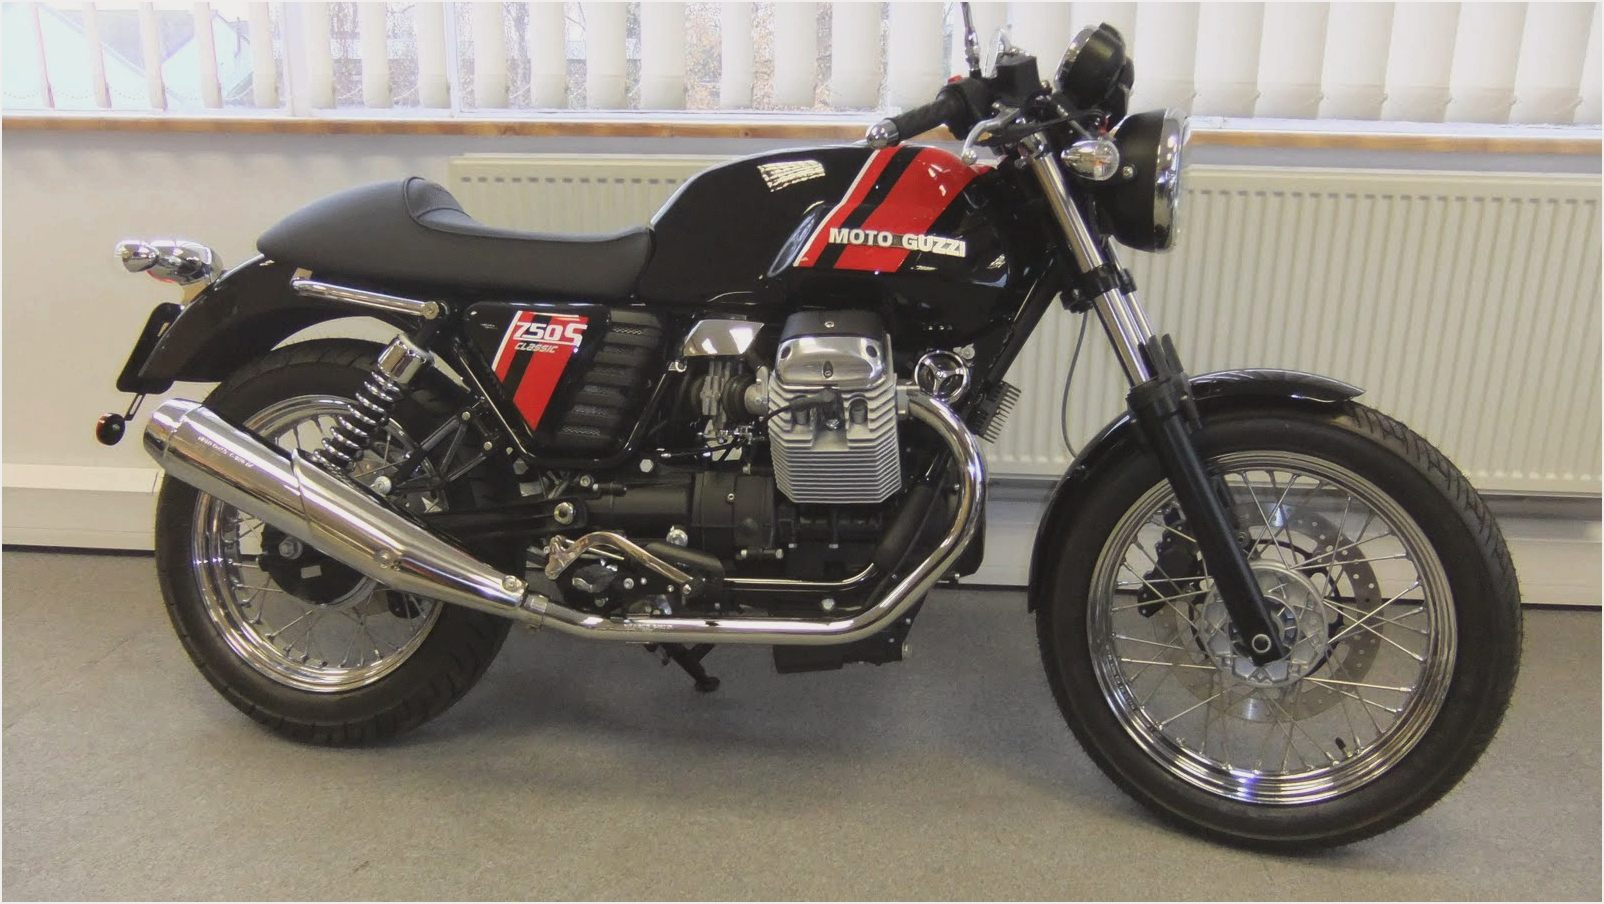 1993 moto guzzi nevada 750 pics specs and information. Black Bedroom Furniture Sets. Home Design Ideas